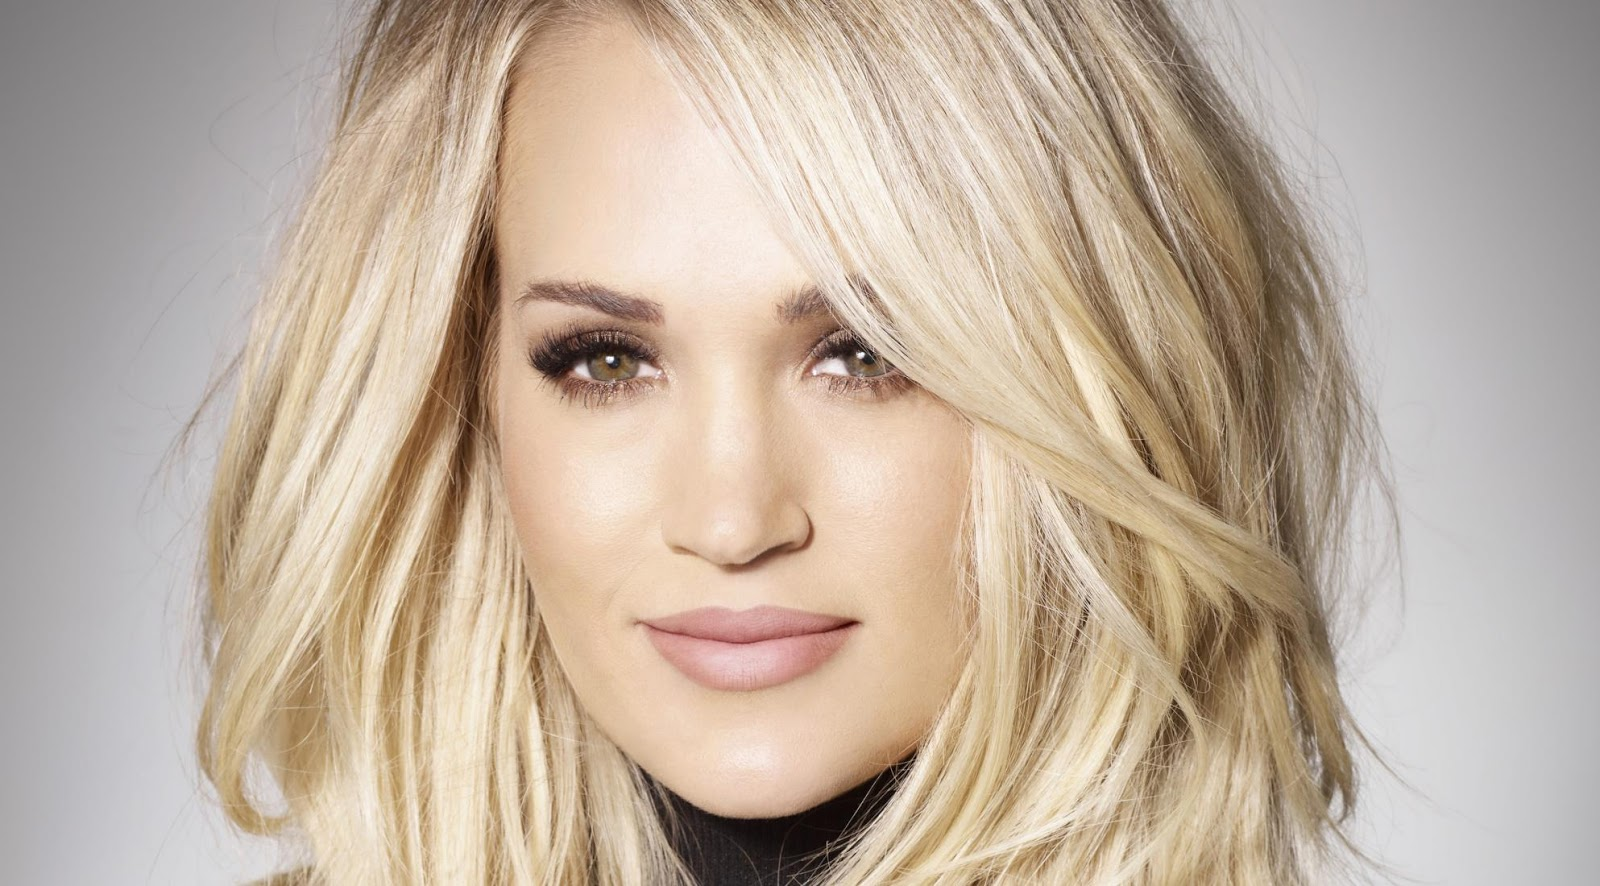 Carrie Underwood smiles for the camera in this Grammy close-up shot.